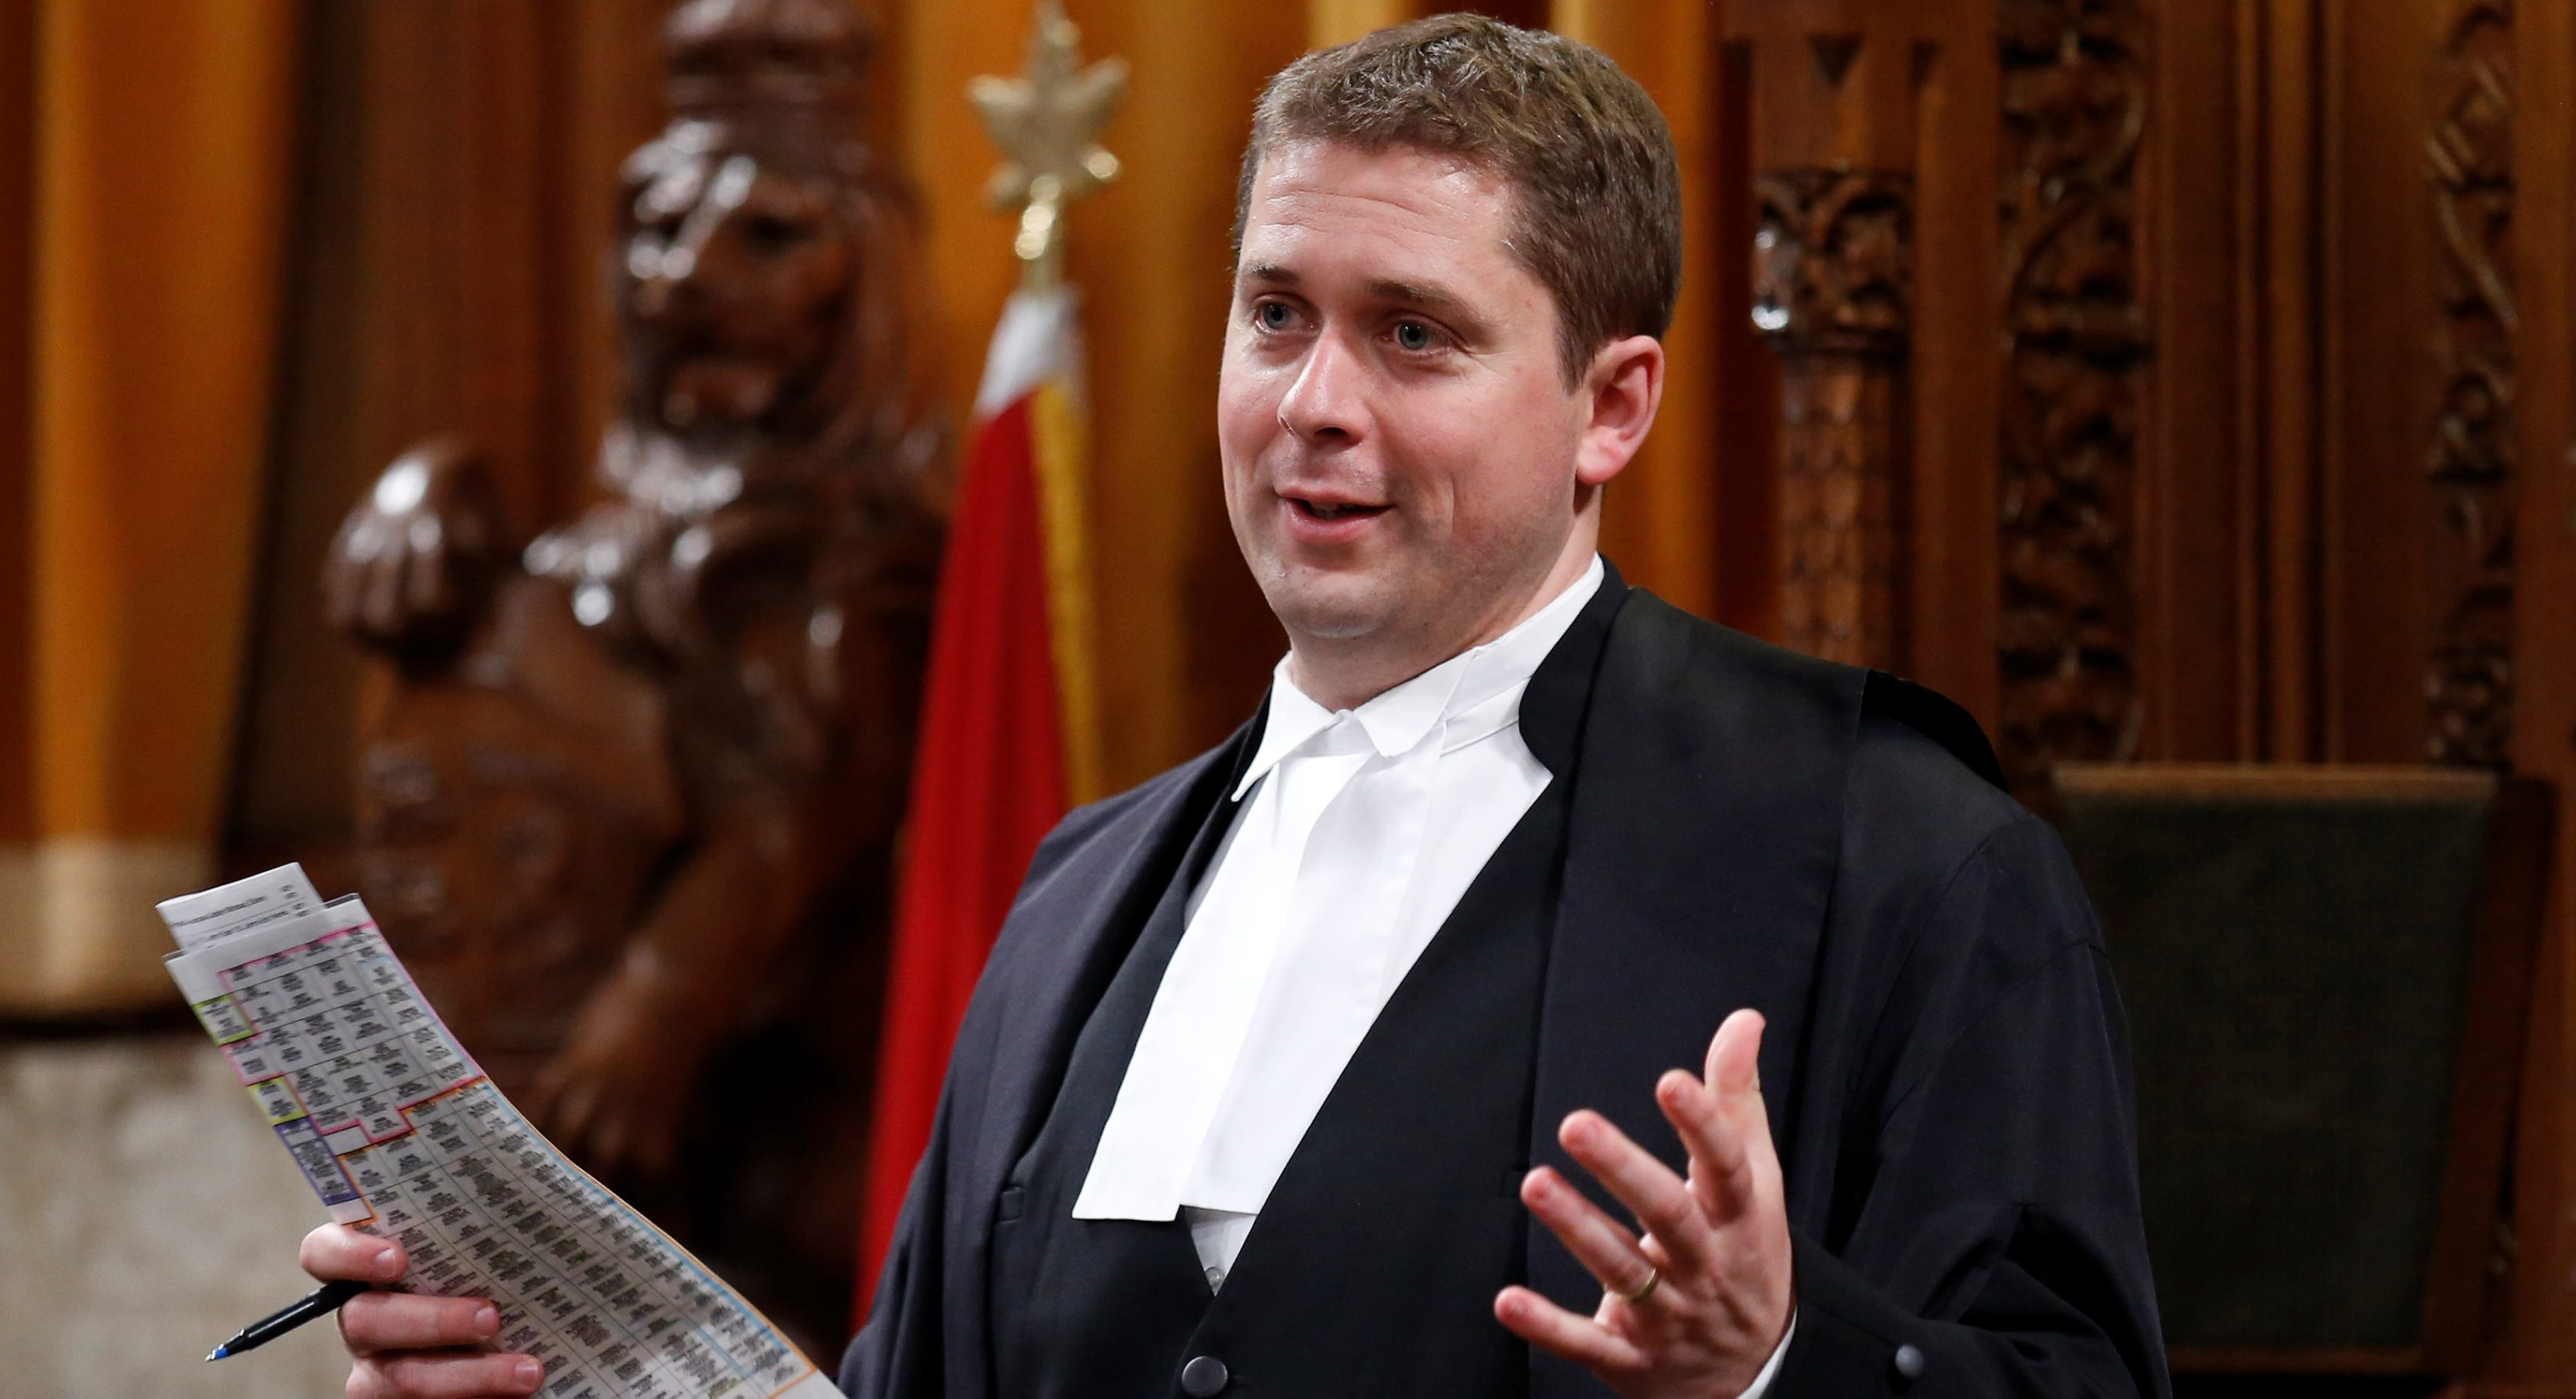 RTR3S25I 3 Jun. 2014 Ottawa, Canada House of Commons Speaker Andrew Scheer presides over Question Period in the House of Commons on Parliament Hill in Ottawa June 3, 2014. REUTERS/Chris Wattie (CANADA - Tags: POLITICS)